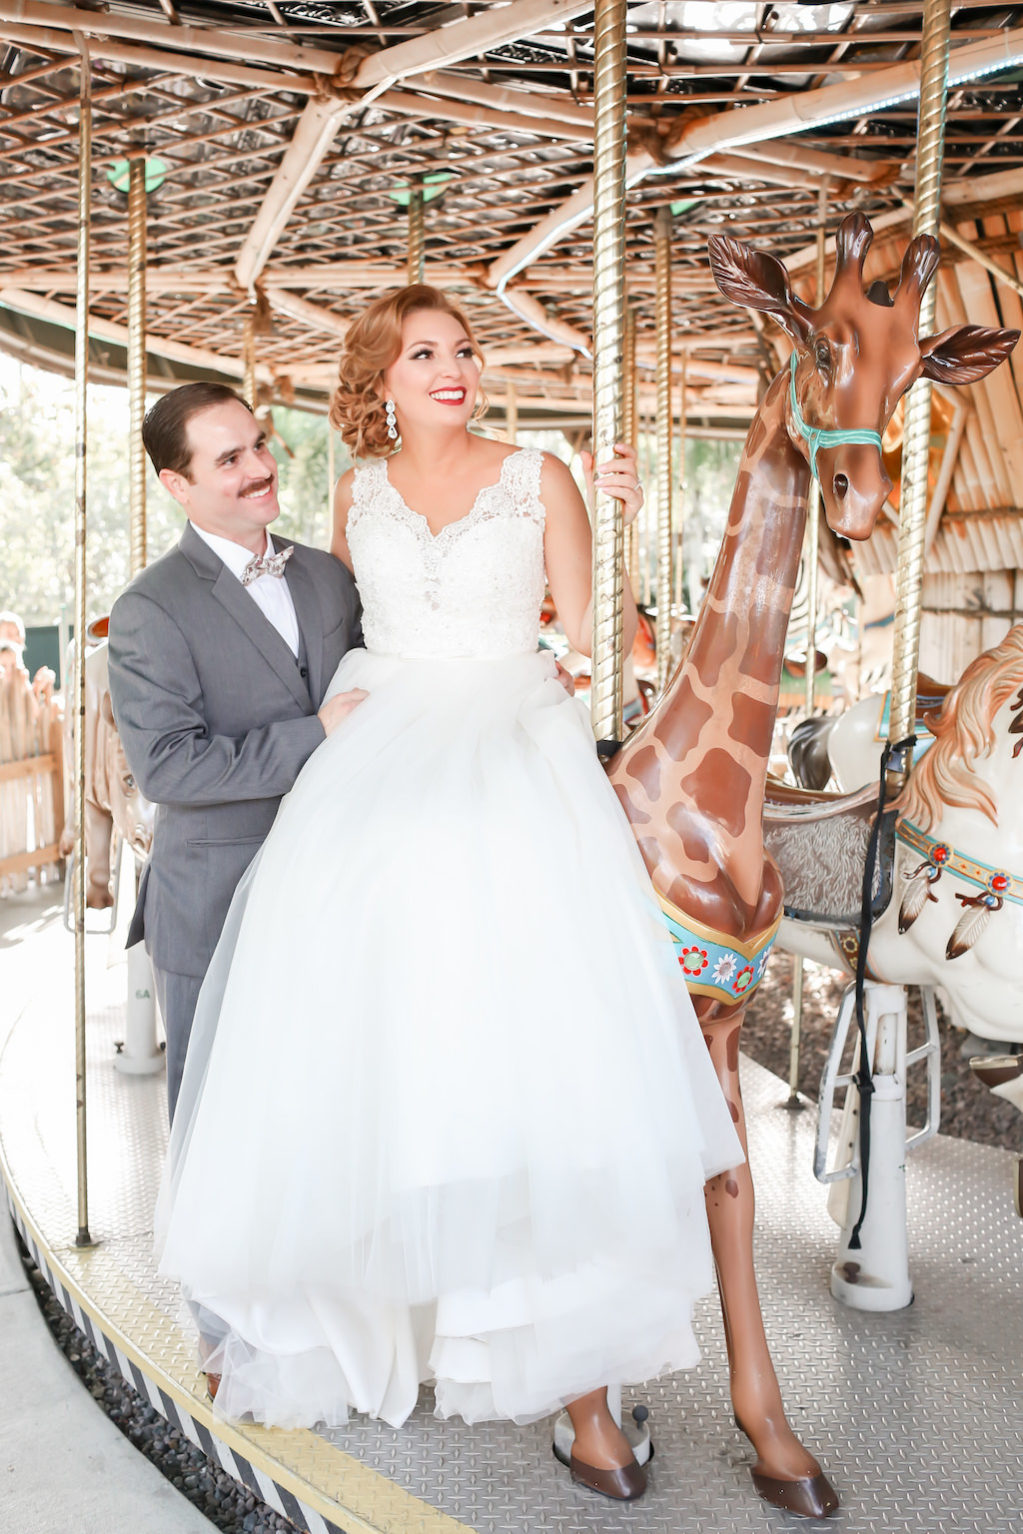 Florida Bride and Groom Riding Carousel Wedding Portrait | Tampa Bay Wedding Photographer Lifelong Photography Studio | Hair and Makeup Michele Renee the Studio | Tampa Unique Wedding Venue ZooTampa at Lowry Park